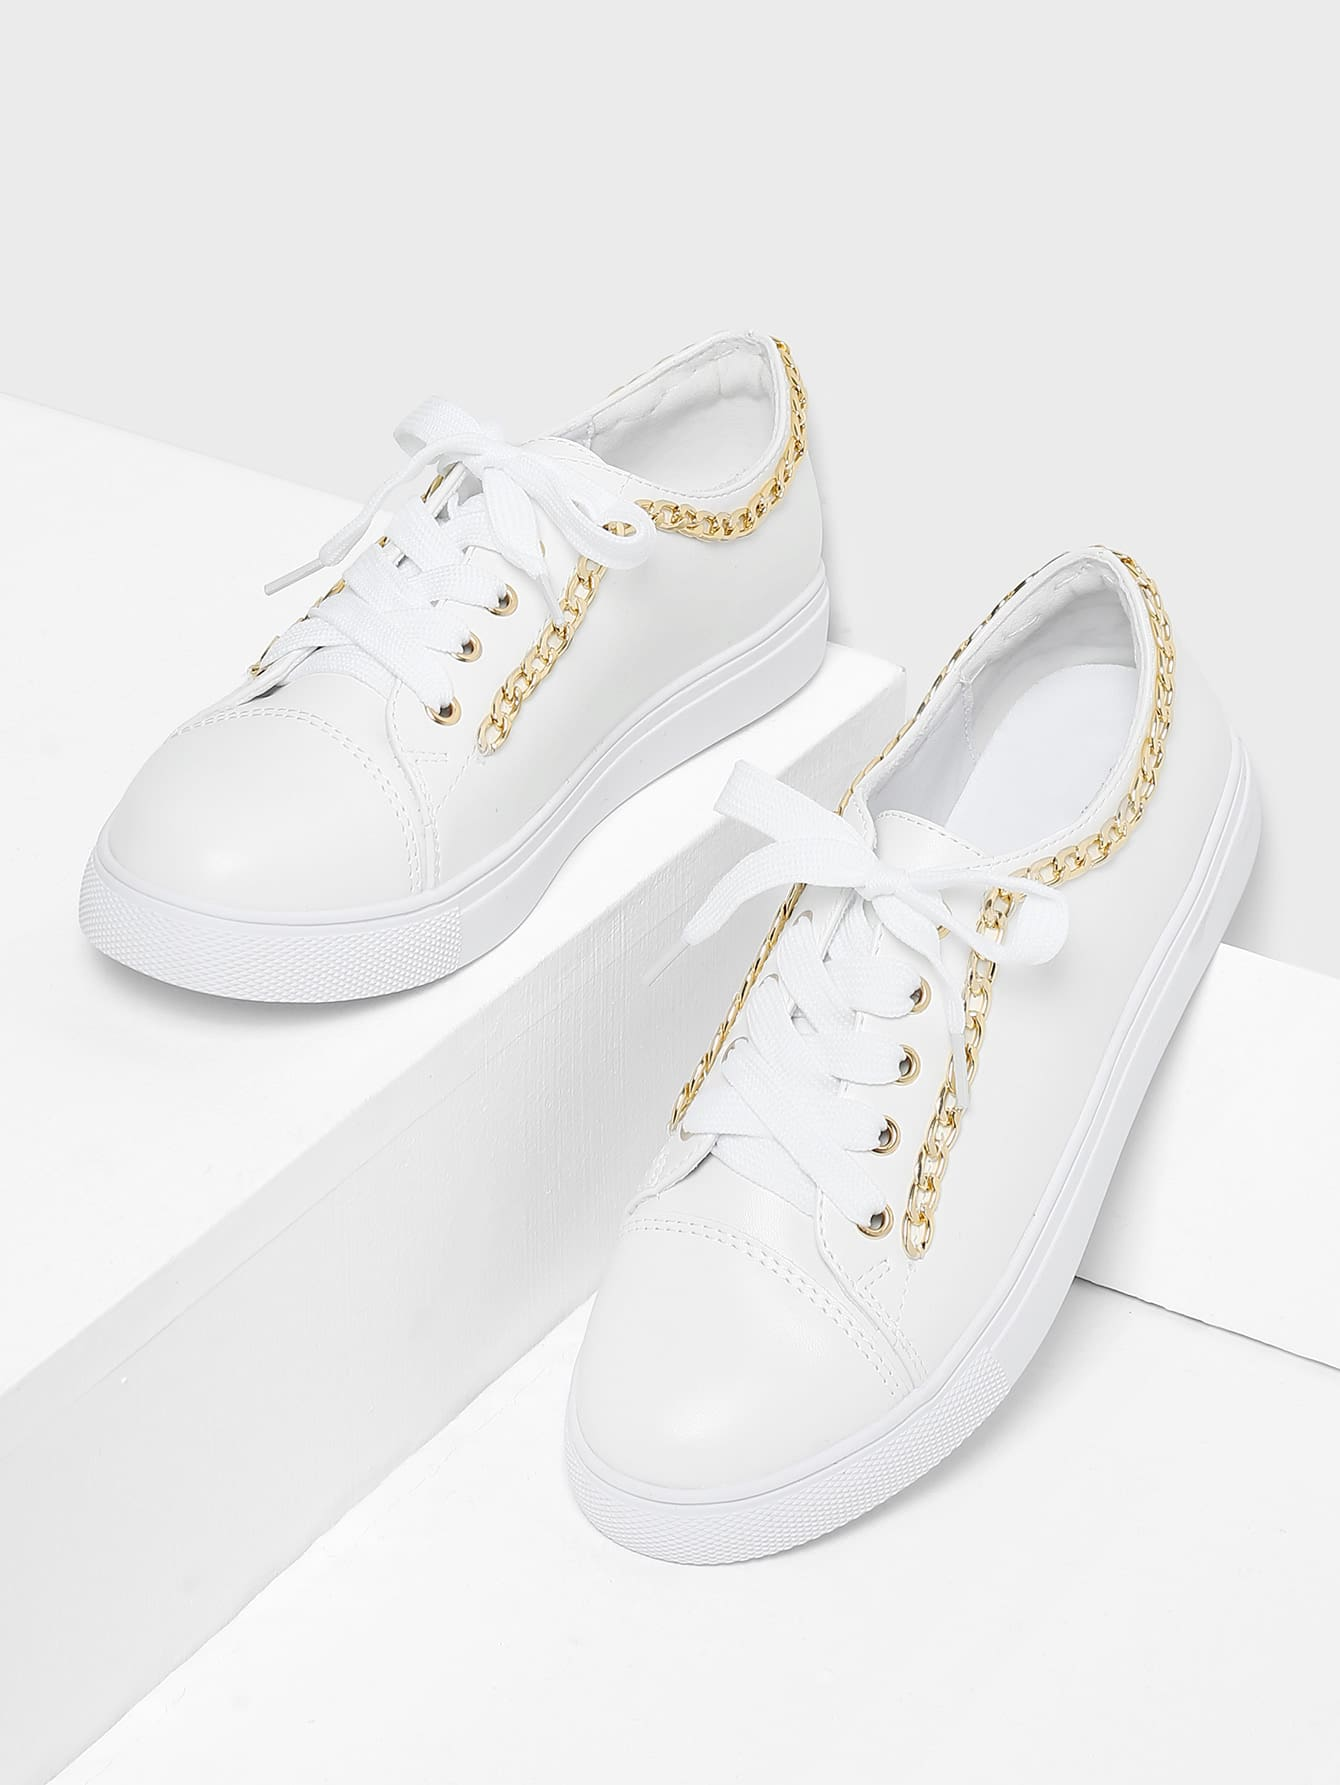 Chain Detail Lace Up Sneakers warehouse 27776